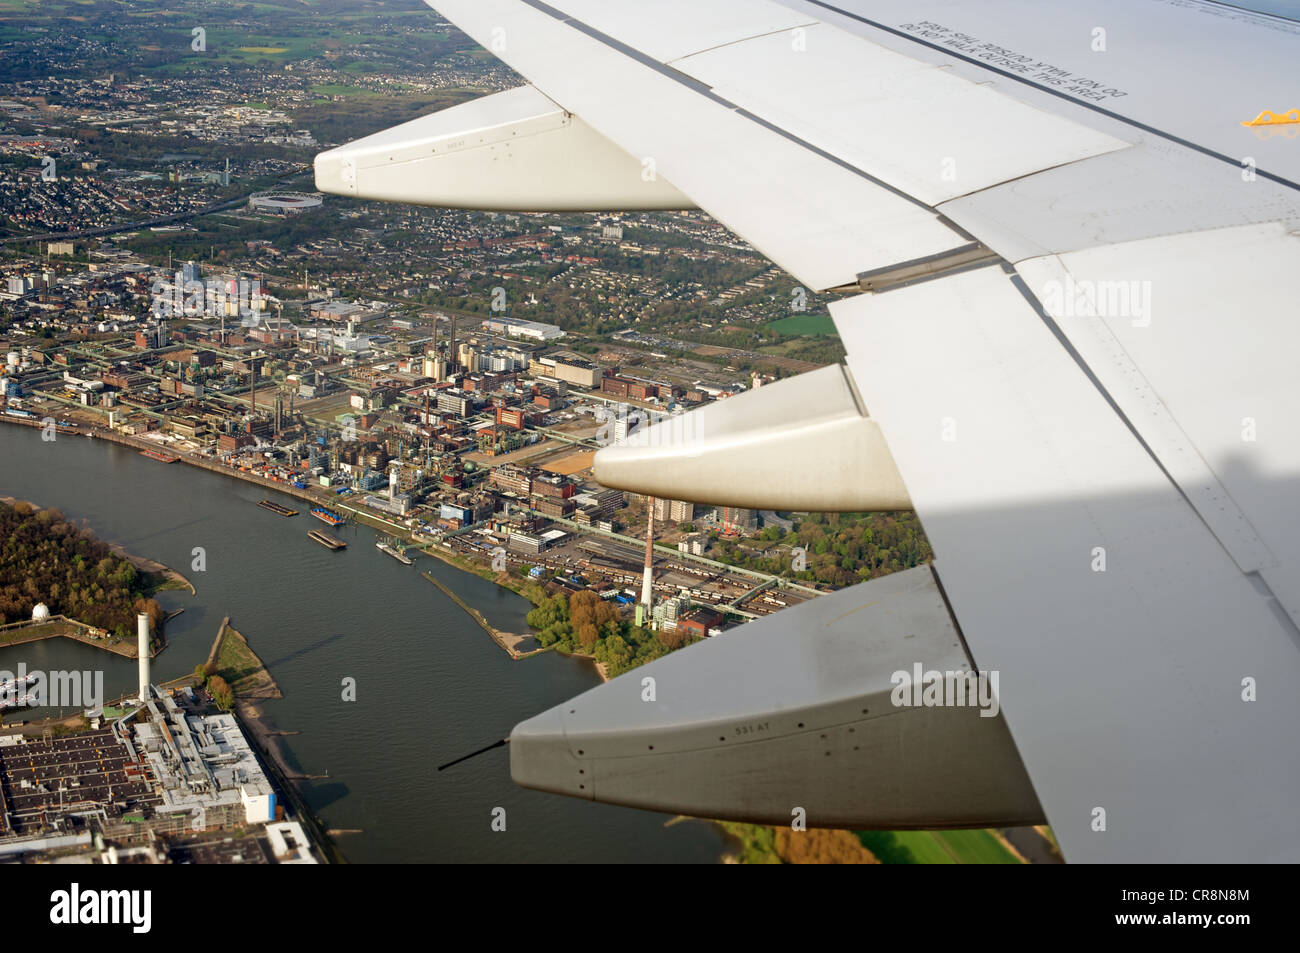 Commercial airliner flying over the river Rhine and the industrial city of Leverkusen, Rhineland, Germany - Stock Image